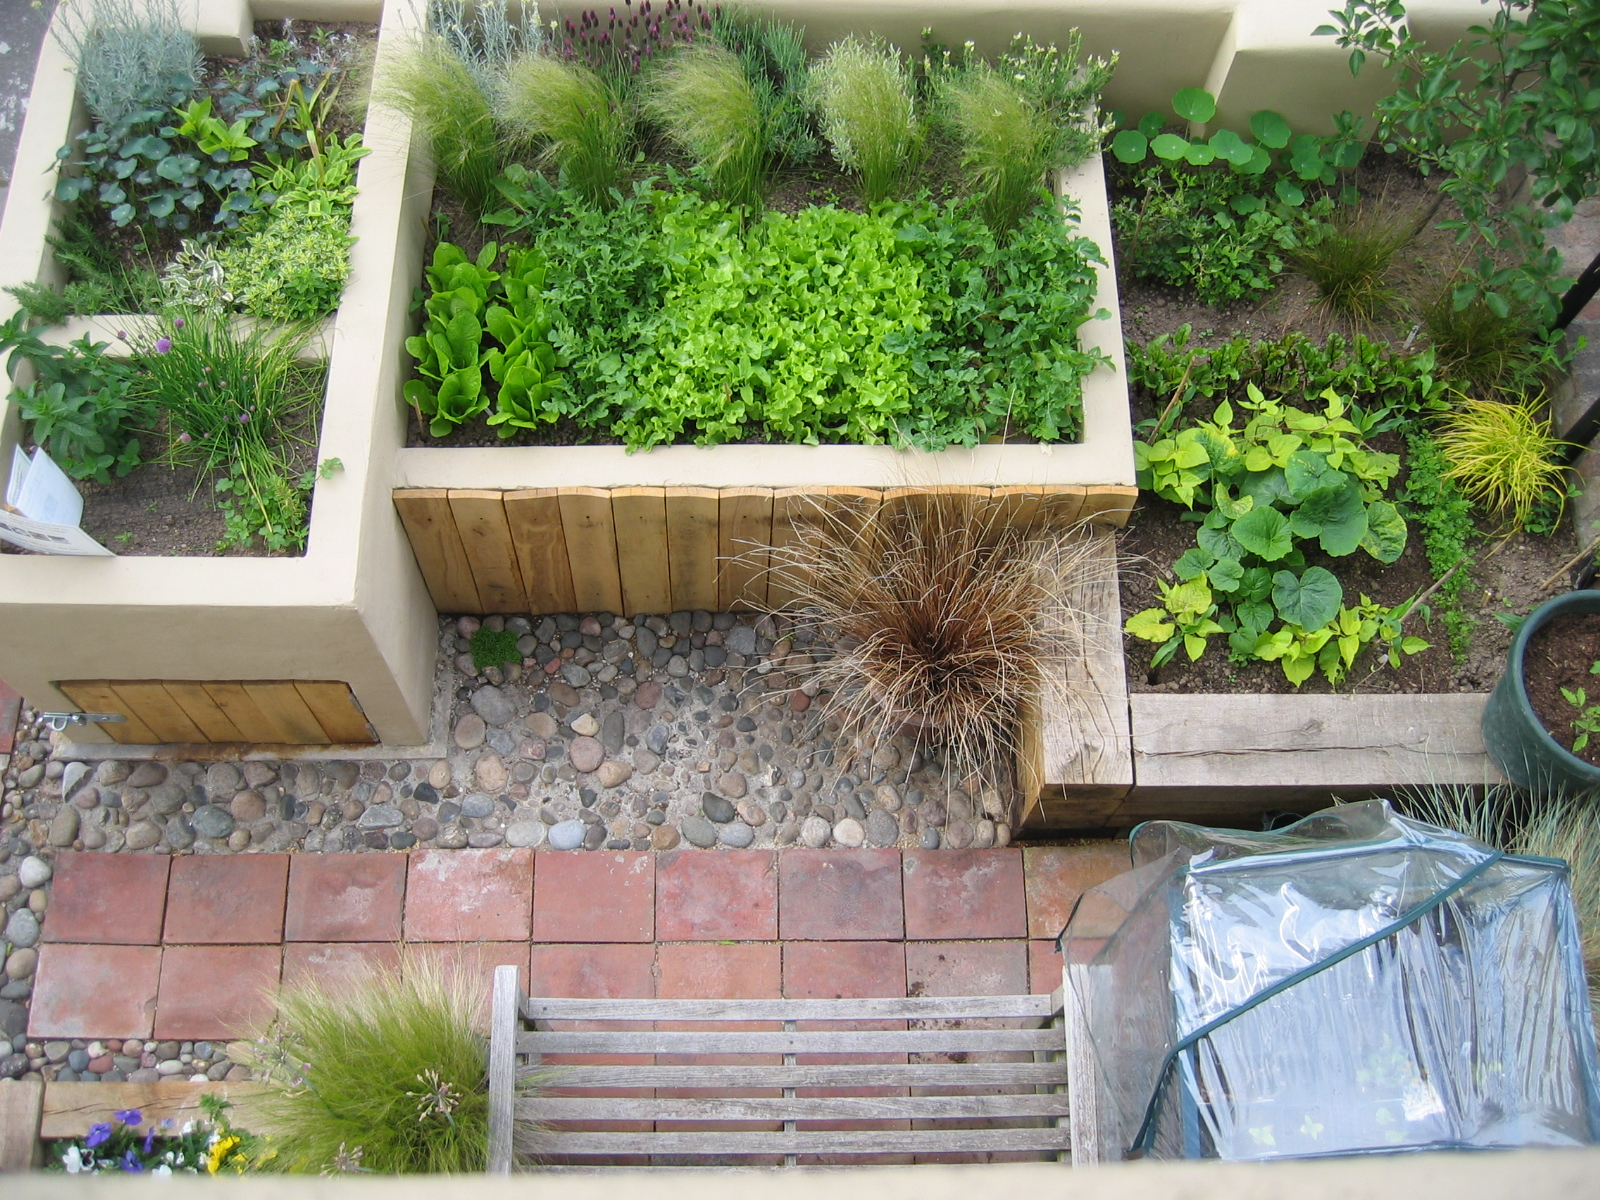 Urban Vegetable Garden Ideas Part - 22: Urban Vegetable Garden